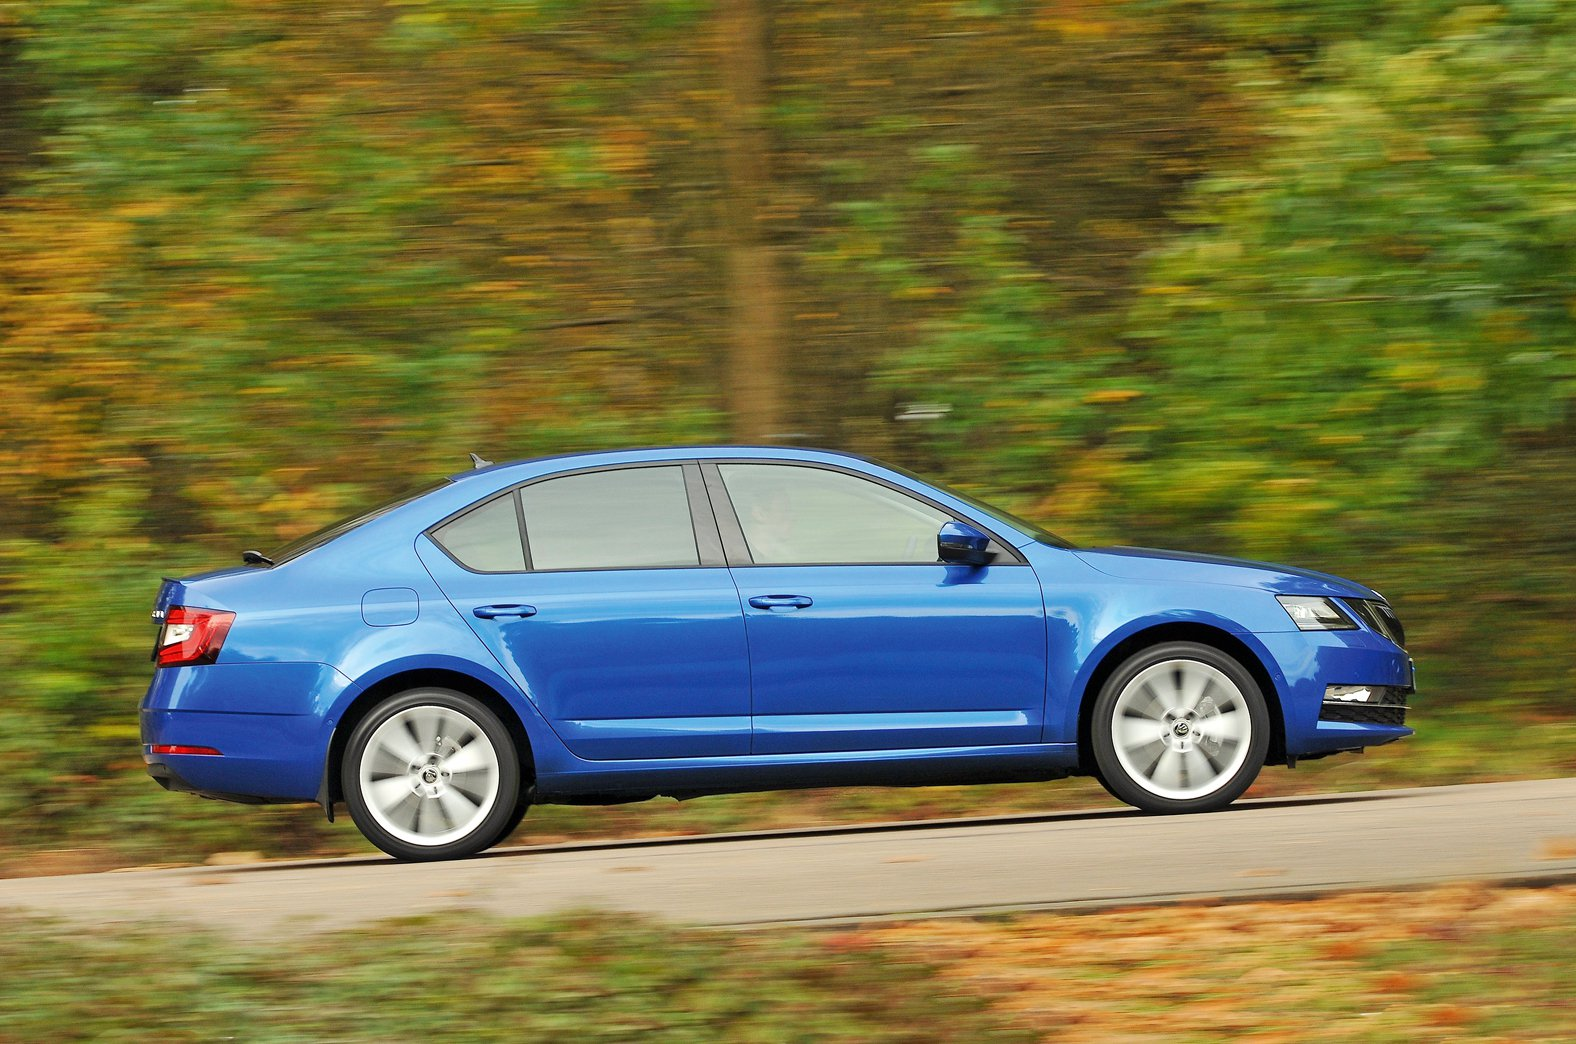 Skoda Octavia side - 67-plate car